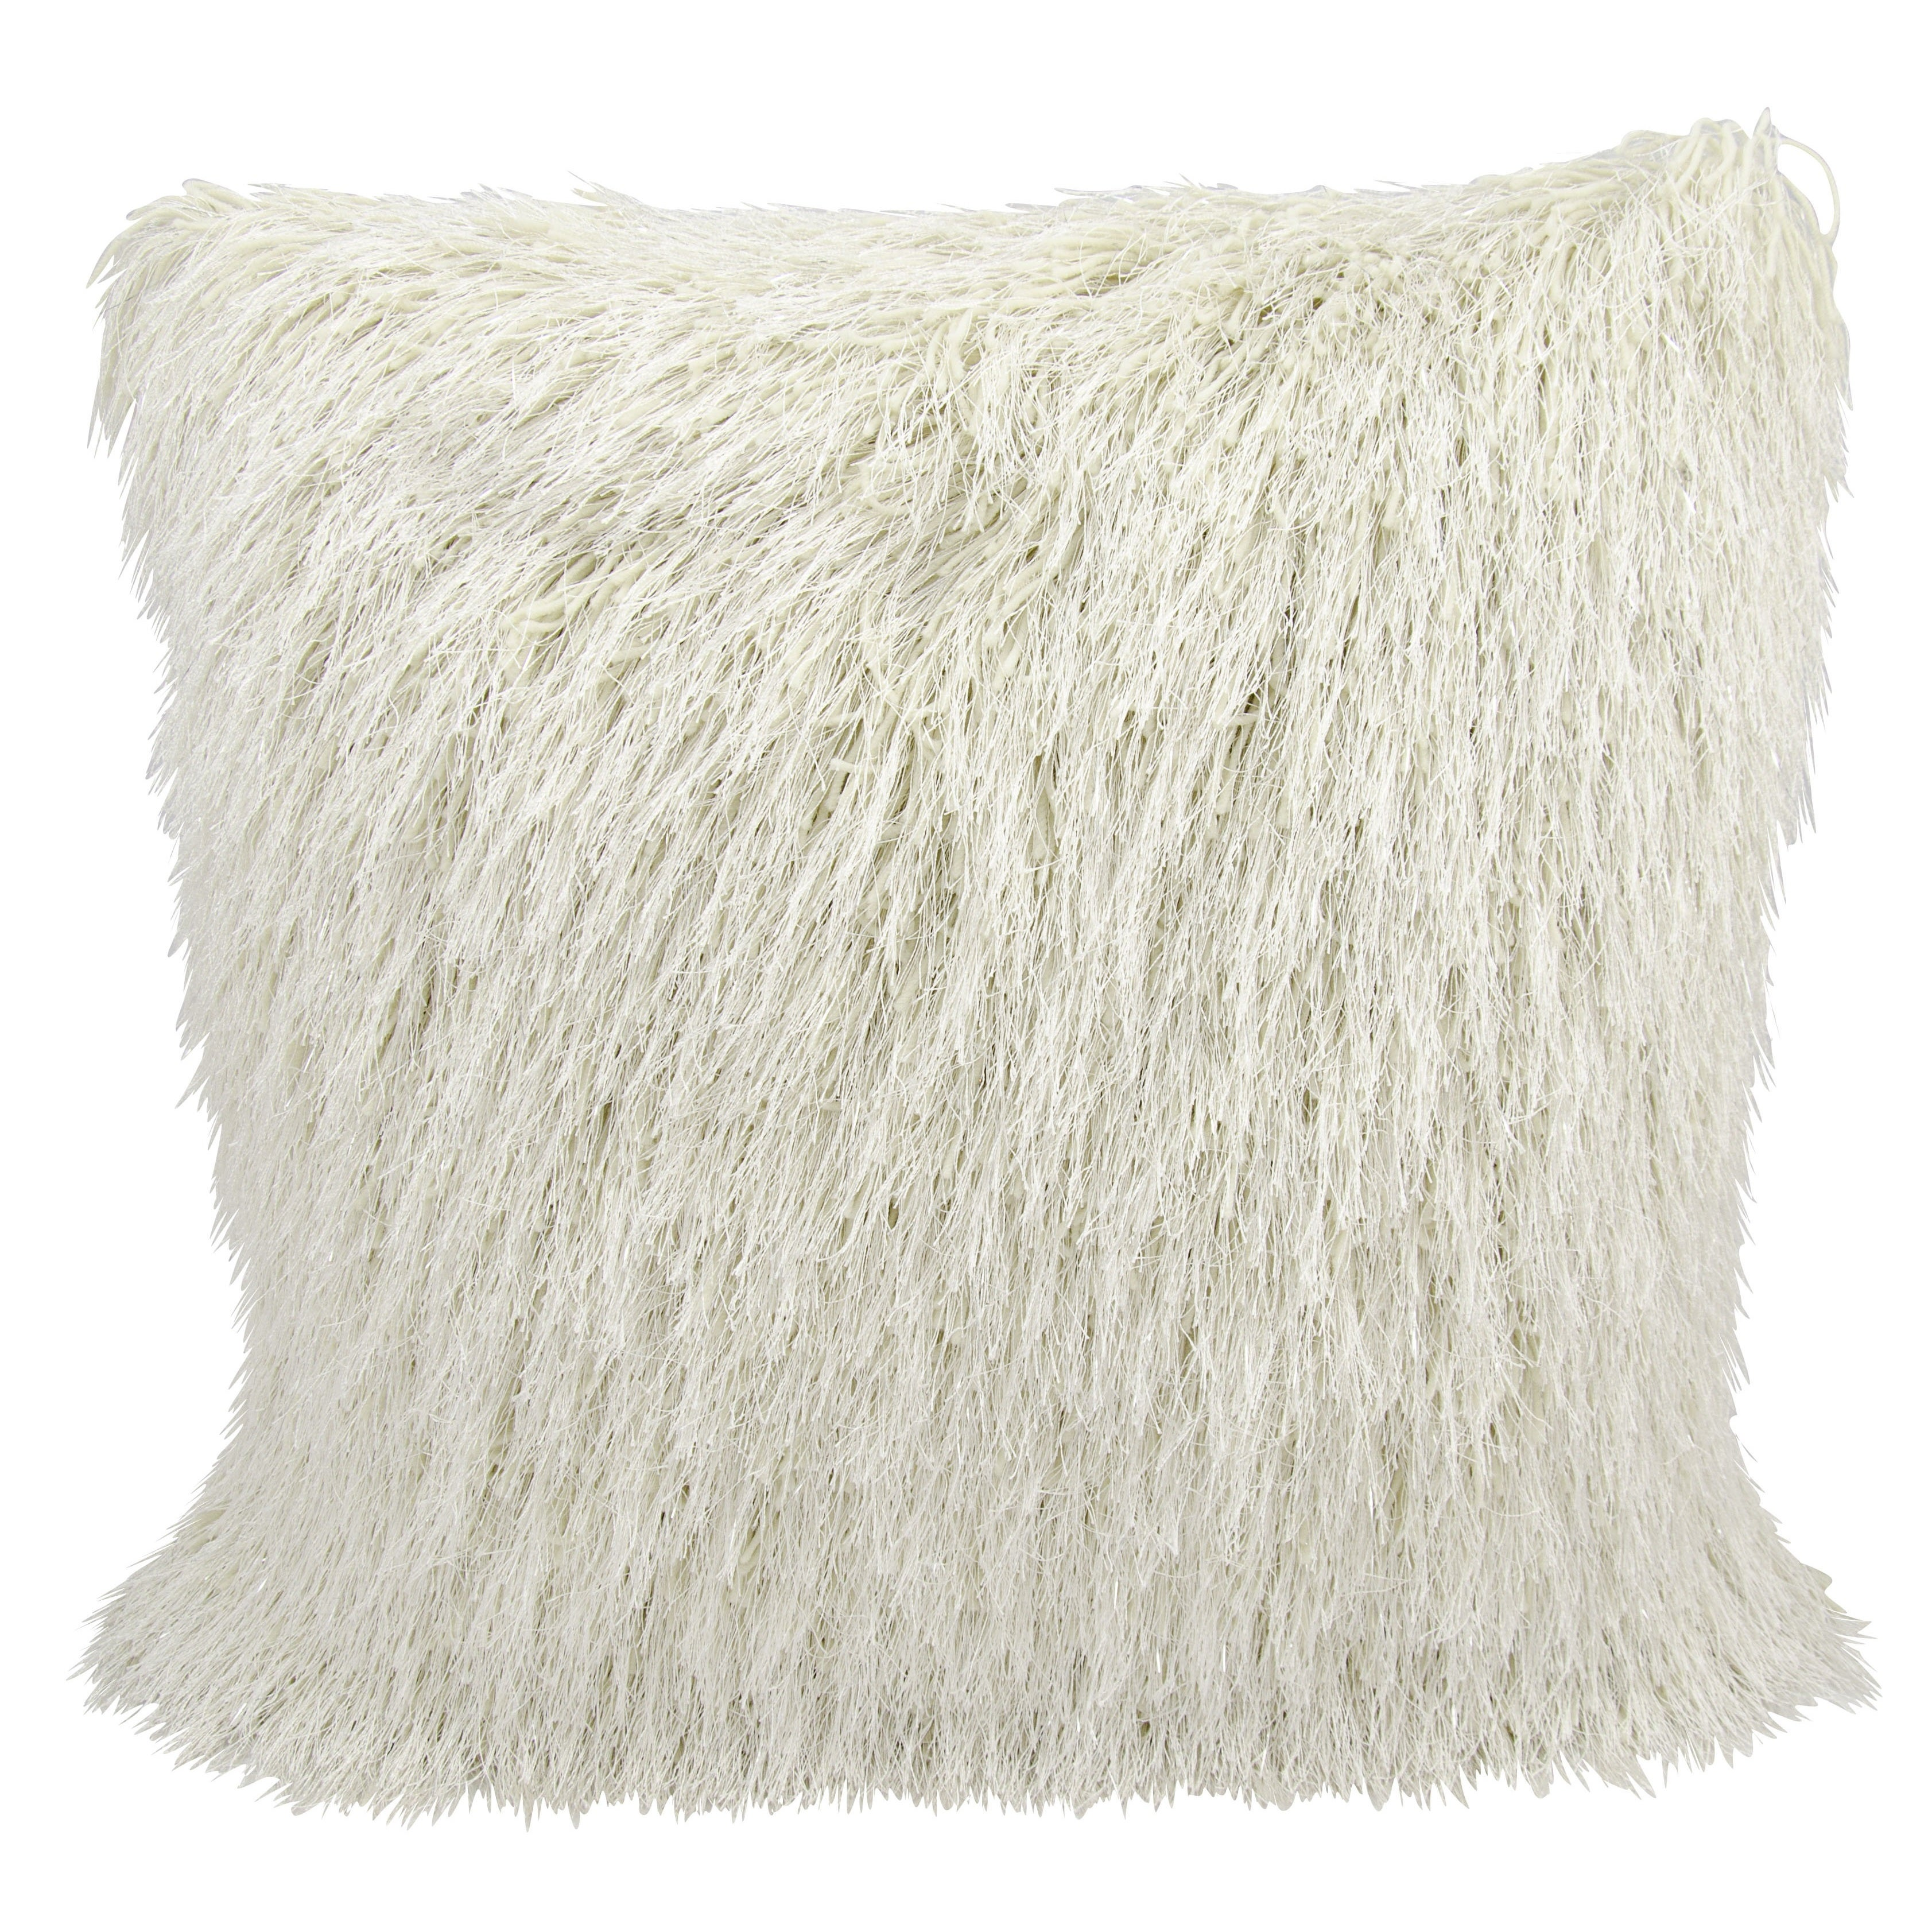 Mina Victory Shag Yarn Shimmer Cream Throw Pillow (20-inch x 20-inch) by  Nourison - Free Shipping Today - Overstock.com - 17452738